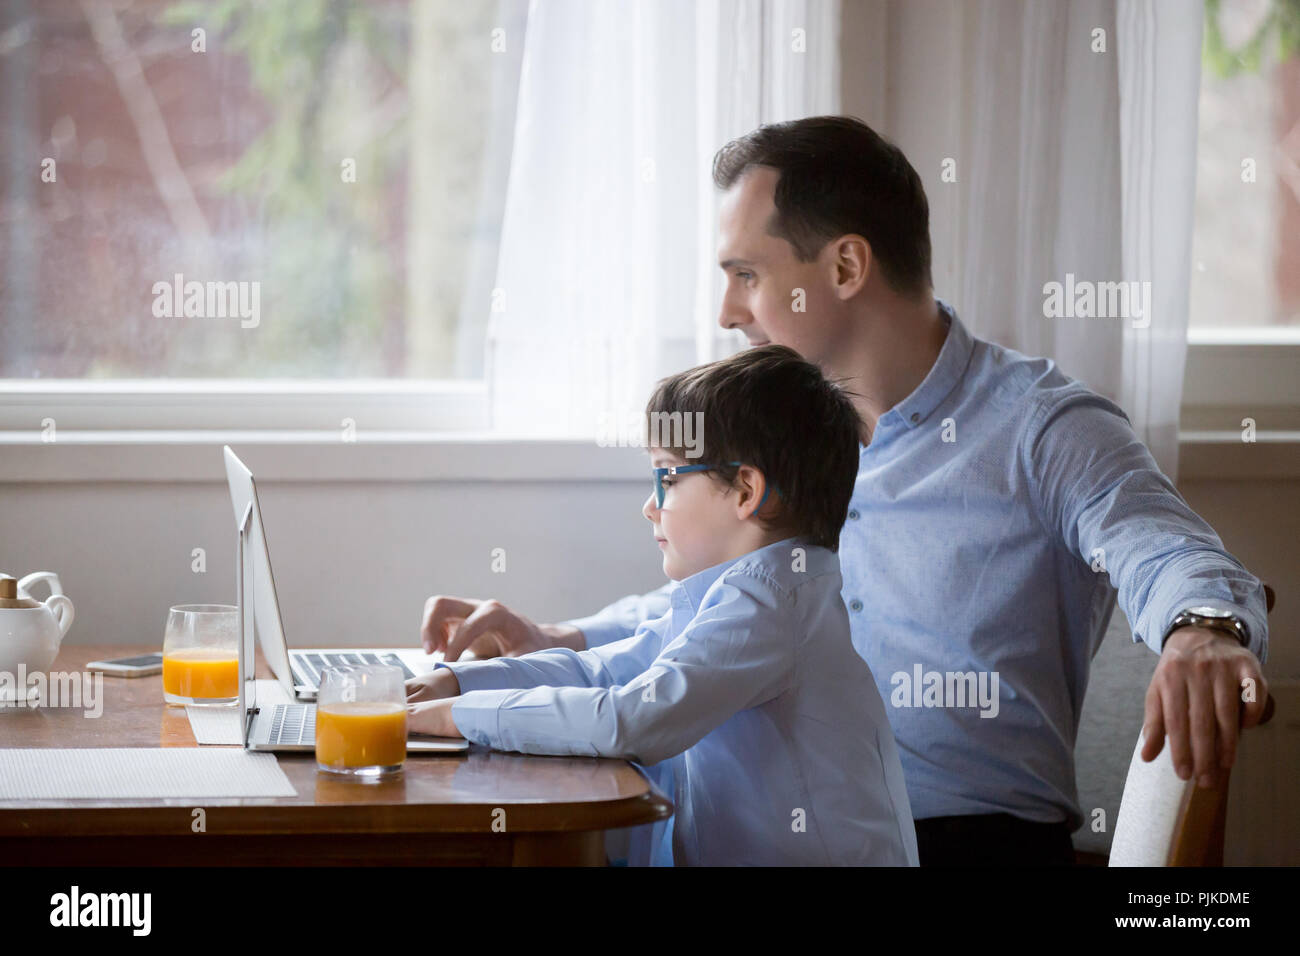 Cute boy and dad working at laptops in kitchen together - Stock Image